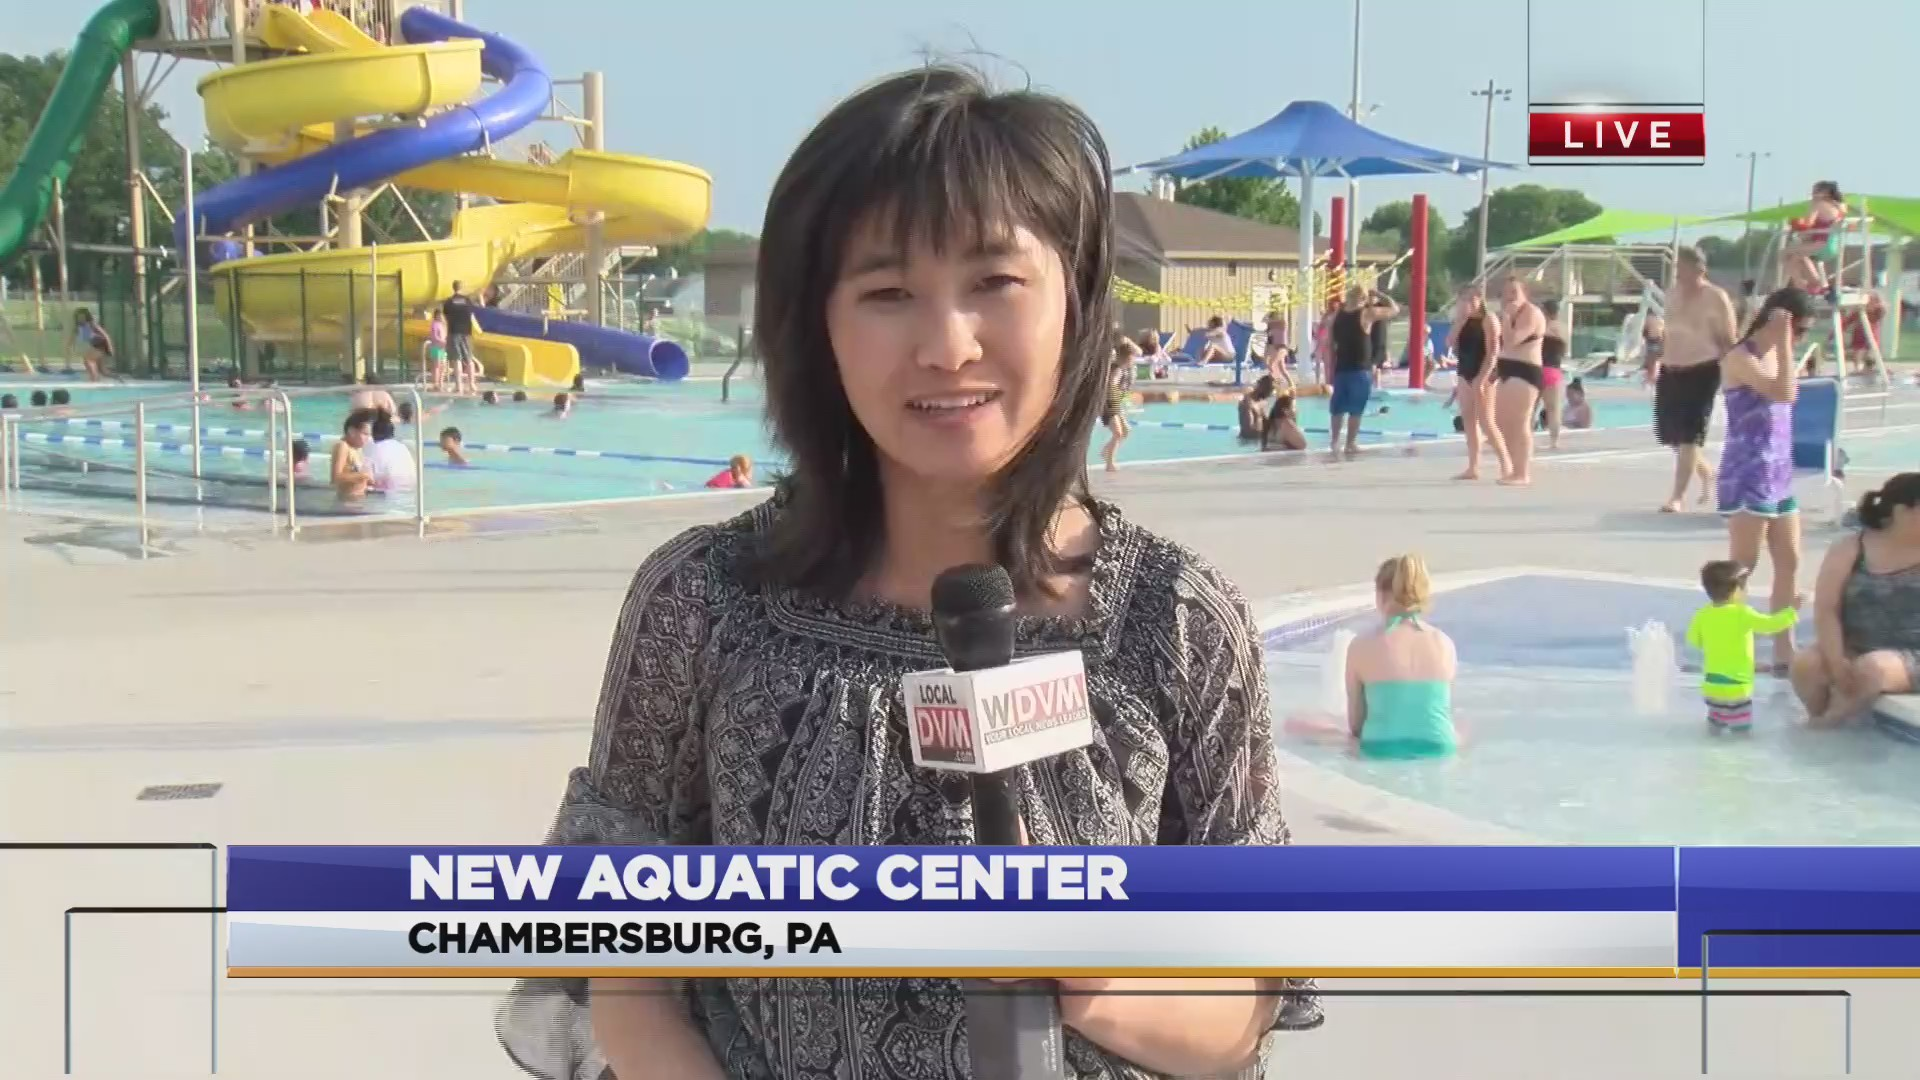 CHAMBERSBURG AQUATIC CENTER